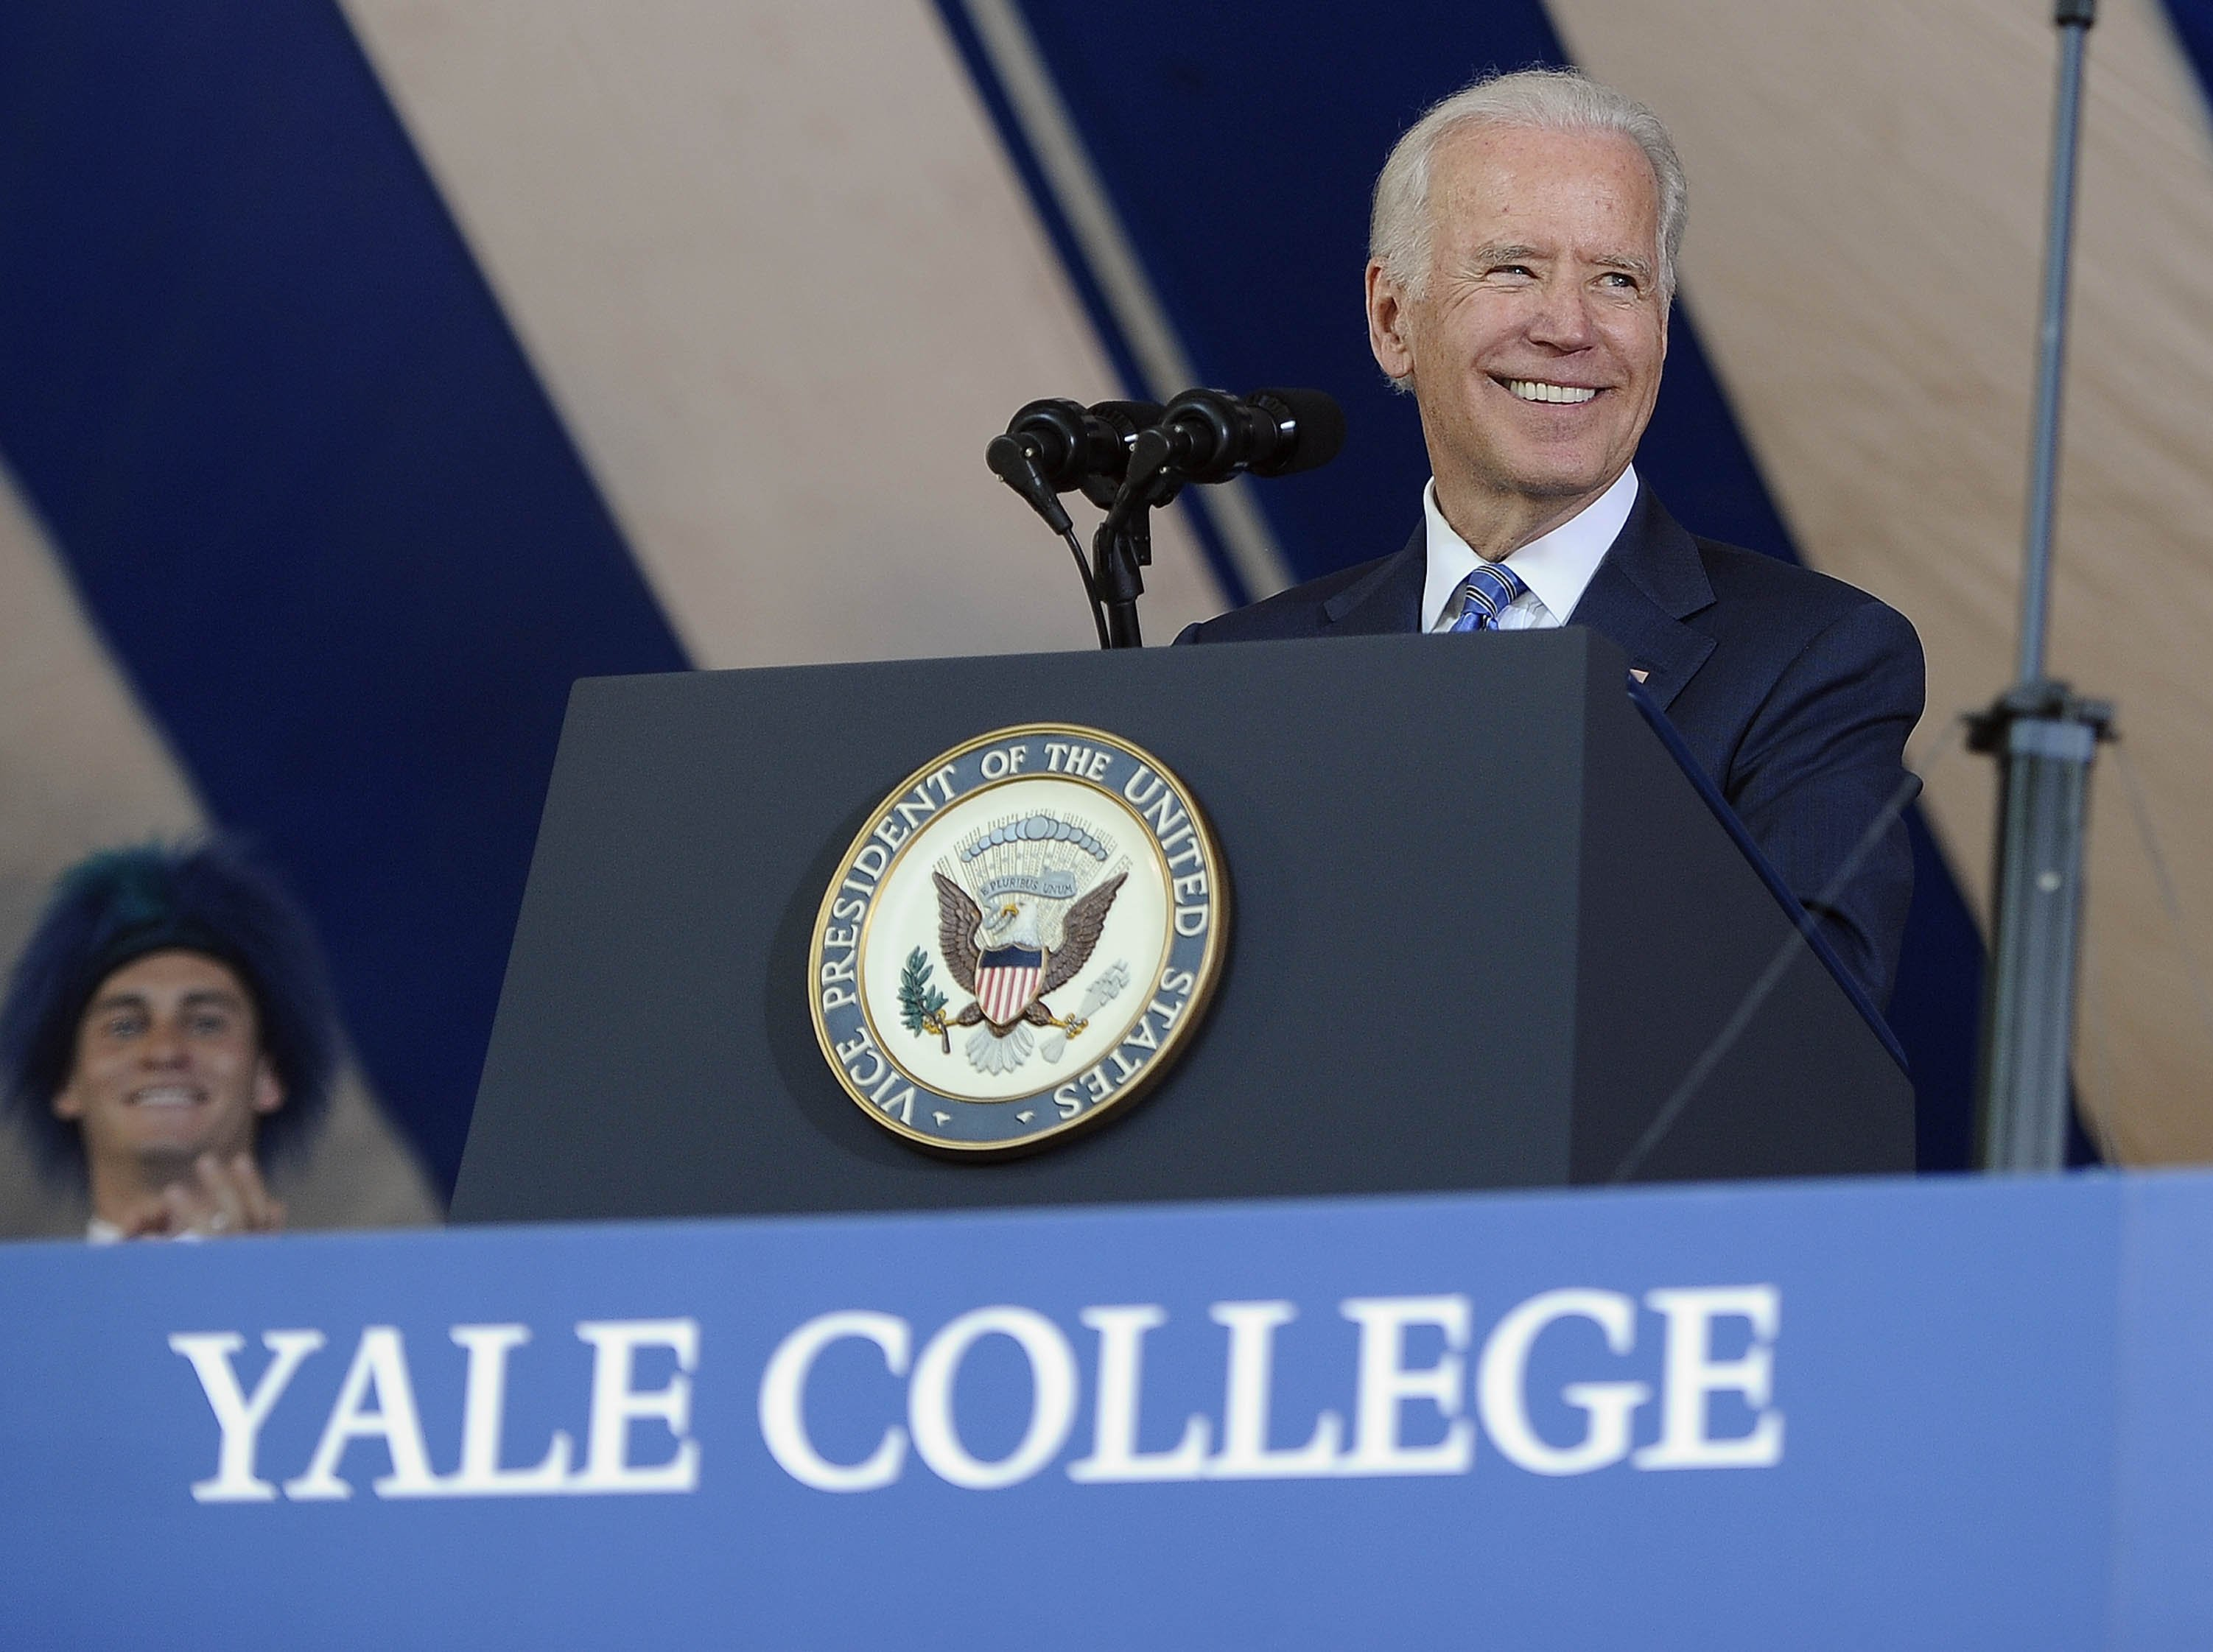 Vice President Joe Biden delivers the Class Day Address at Yale University on May 17, 2015, in New Haven, Conn.